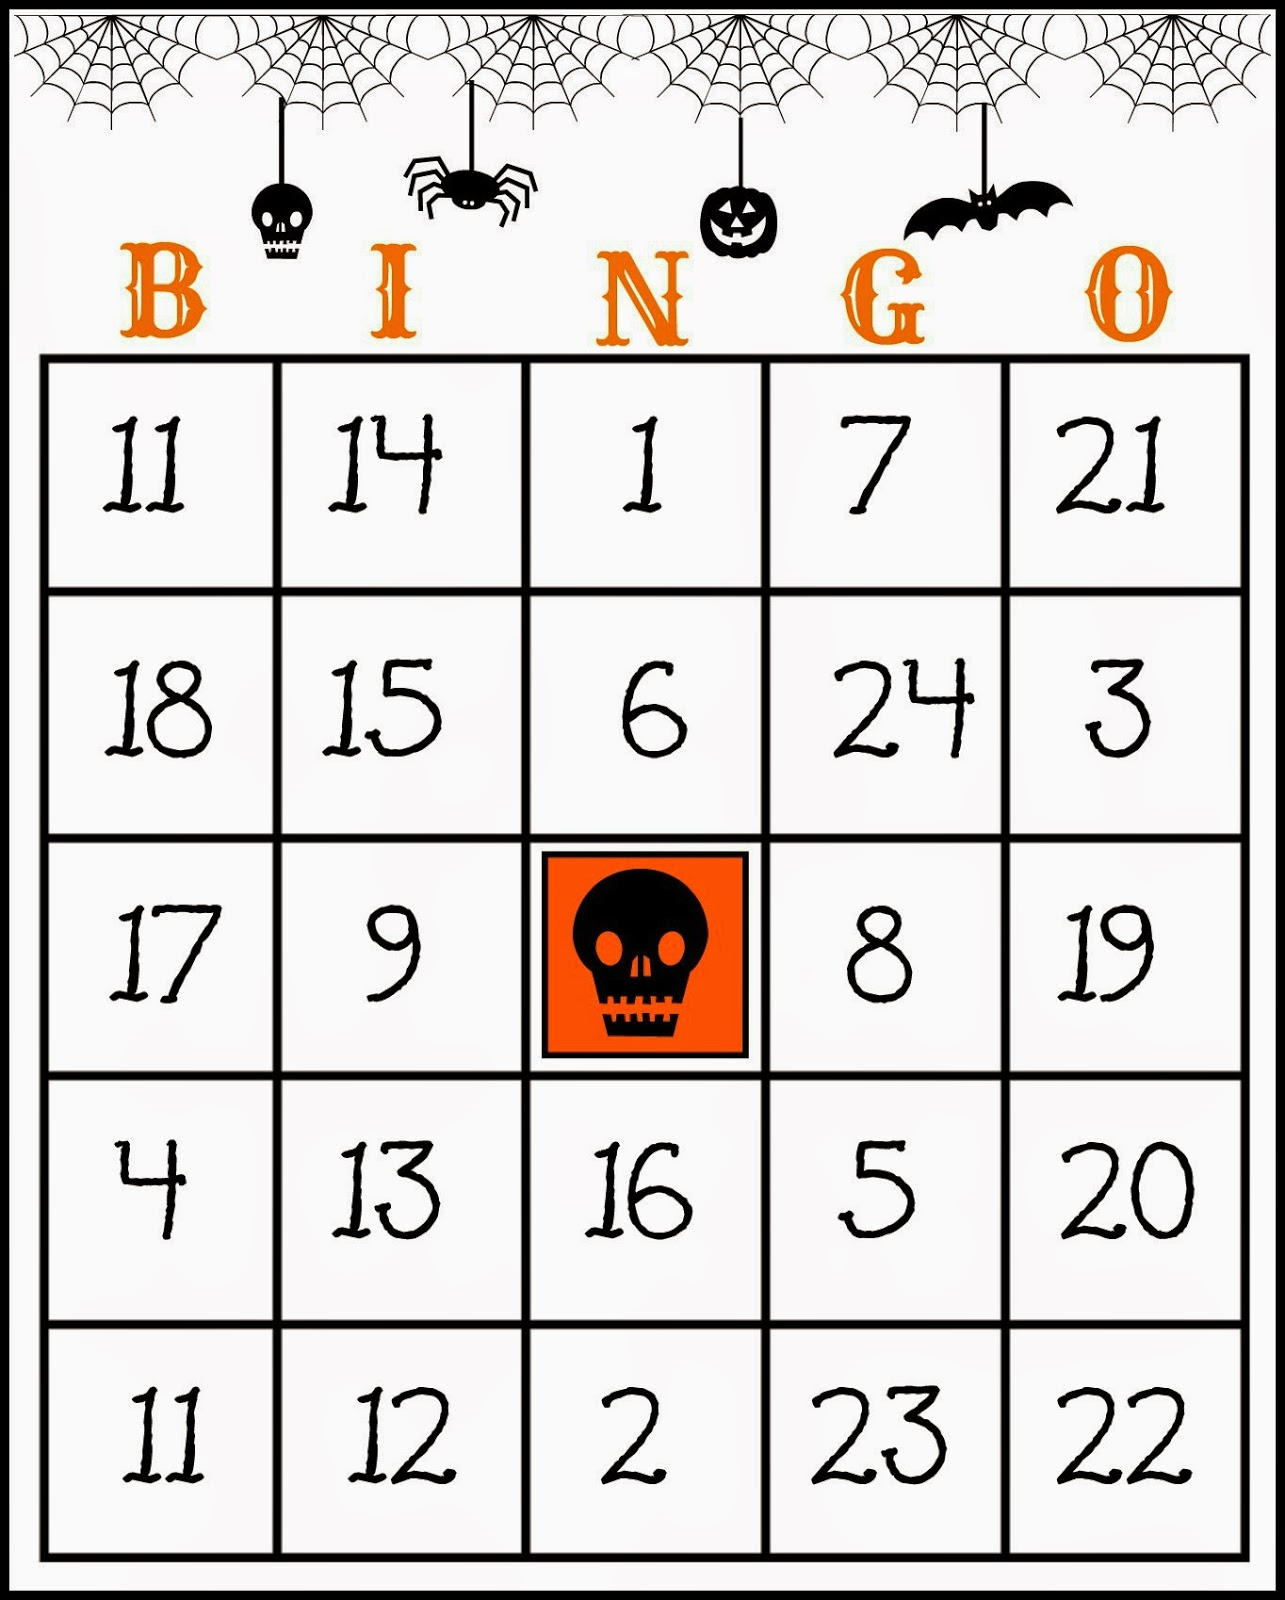 photograph regarding Printable Halloween Bingo Cards identified as Cunning inside of Crosby: Totally free Printable Halloween Bingo Activity